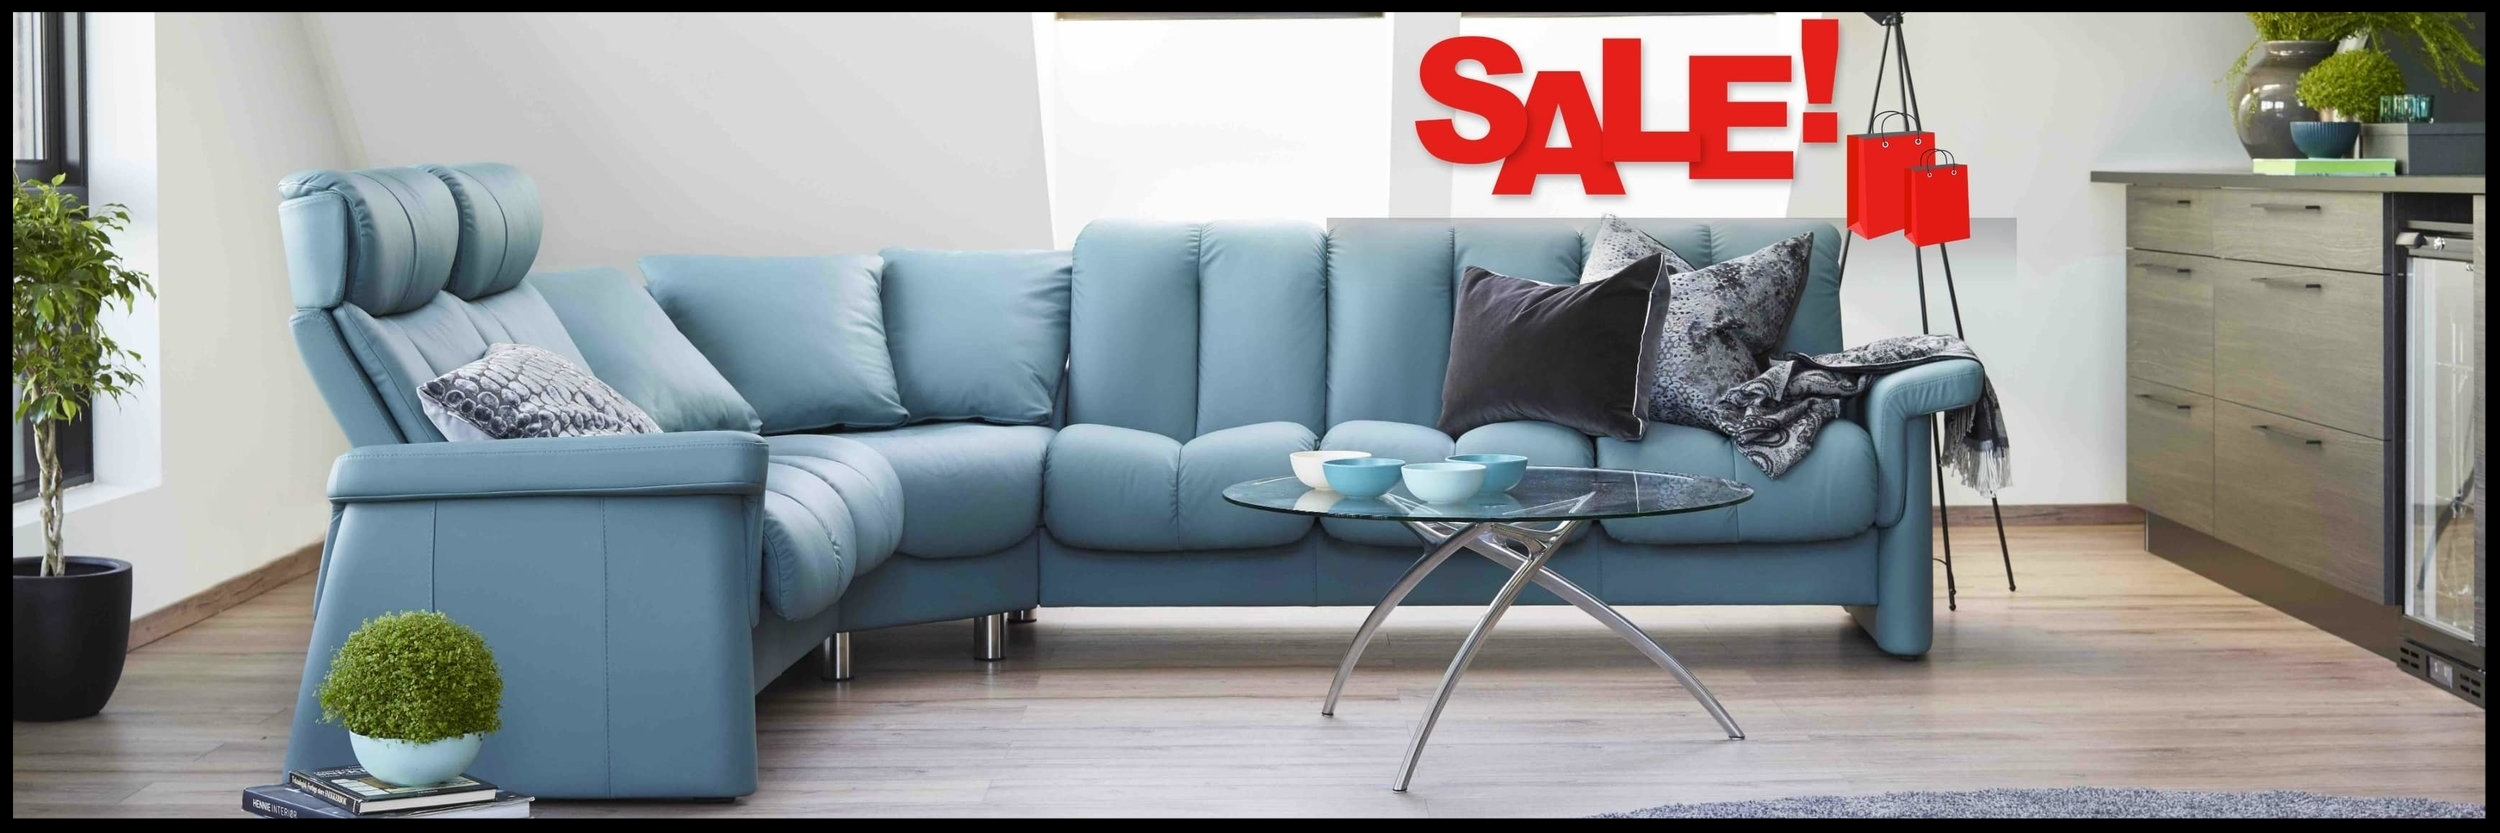 Clearance & Showroom Specials | Shop Discount Stressless